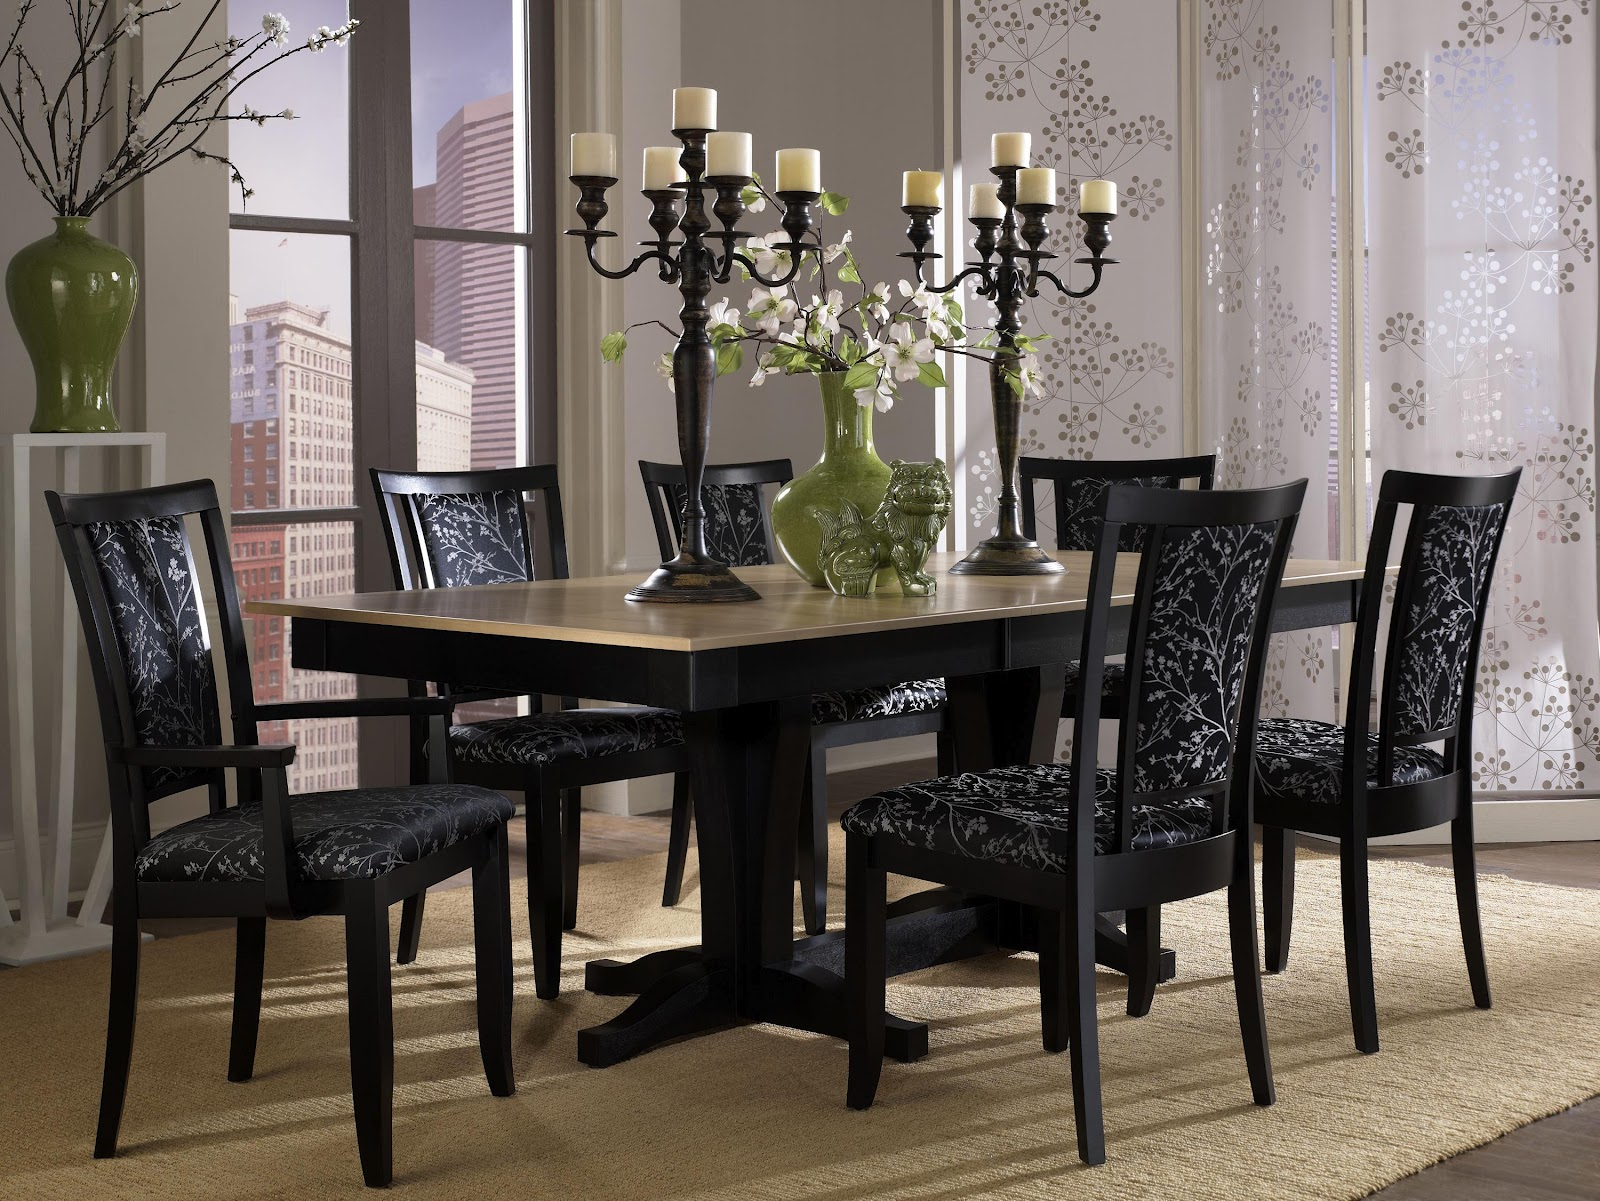 Canadel Dining Room Sets New York DINING ROOMUNIQUE